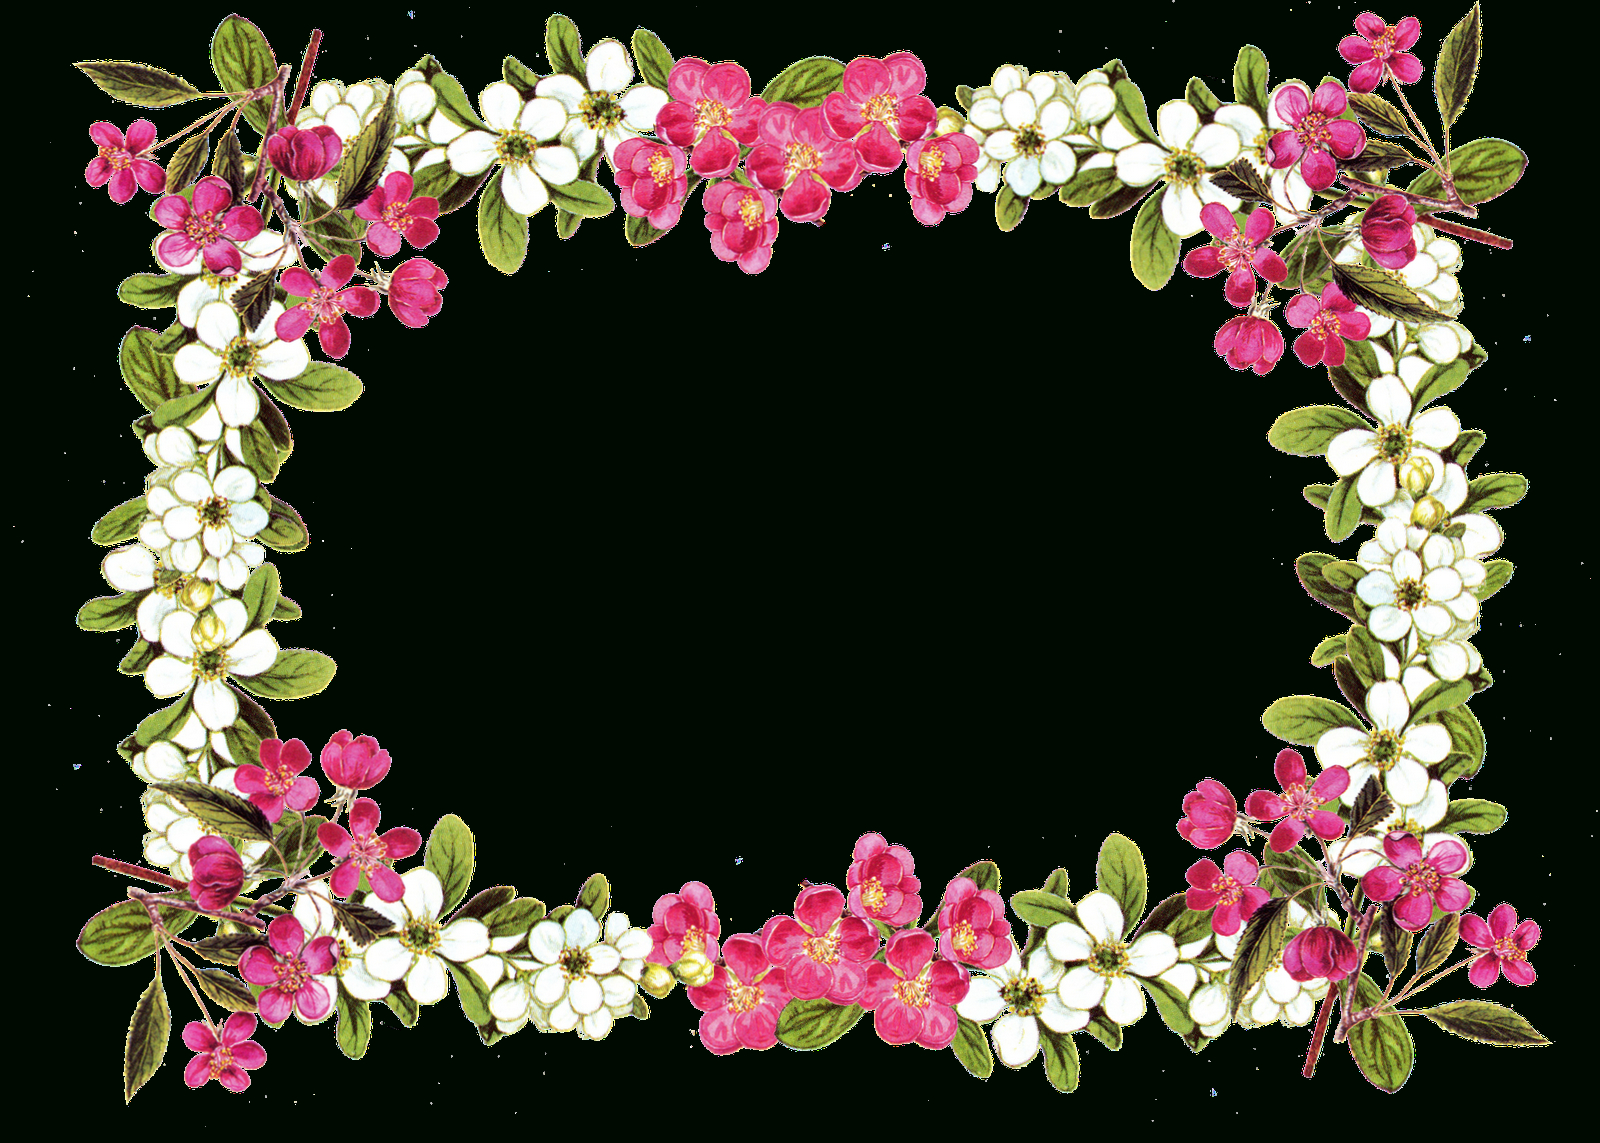 Free Printable Flower Templates Clipart | Free Download Best Free - Free Printable Clip Art Flowers